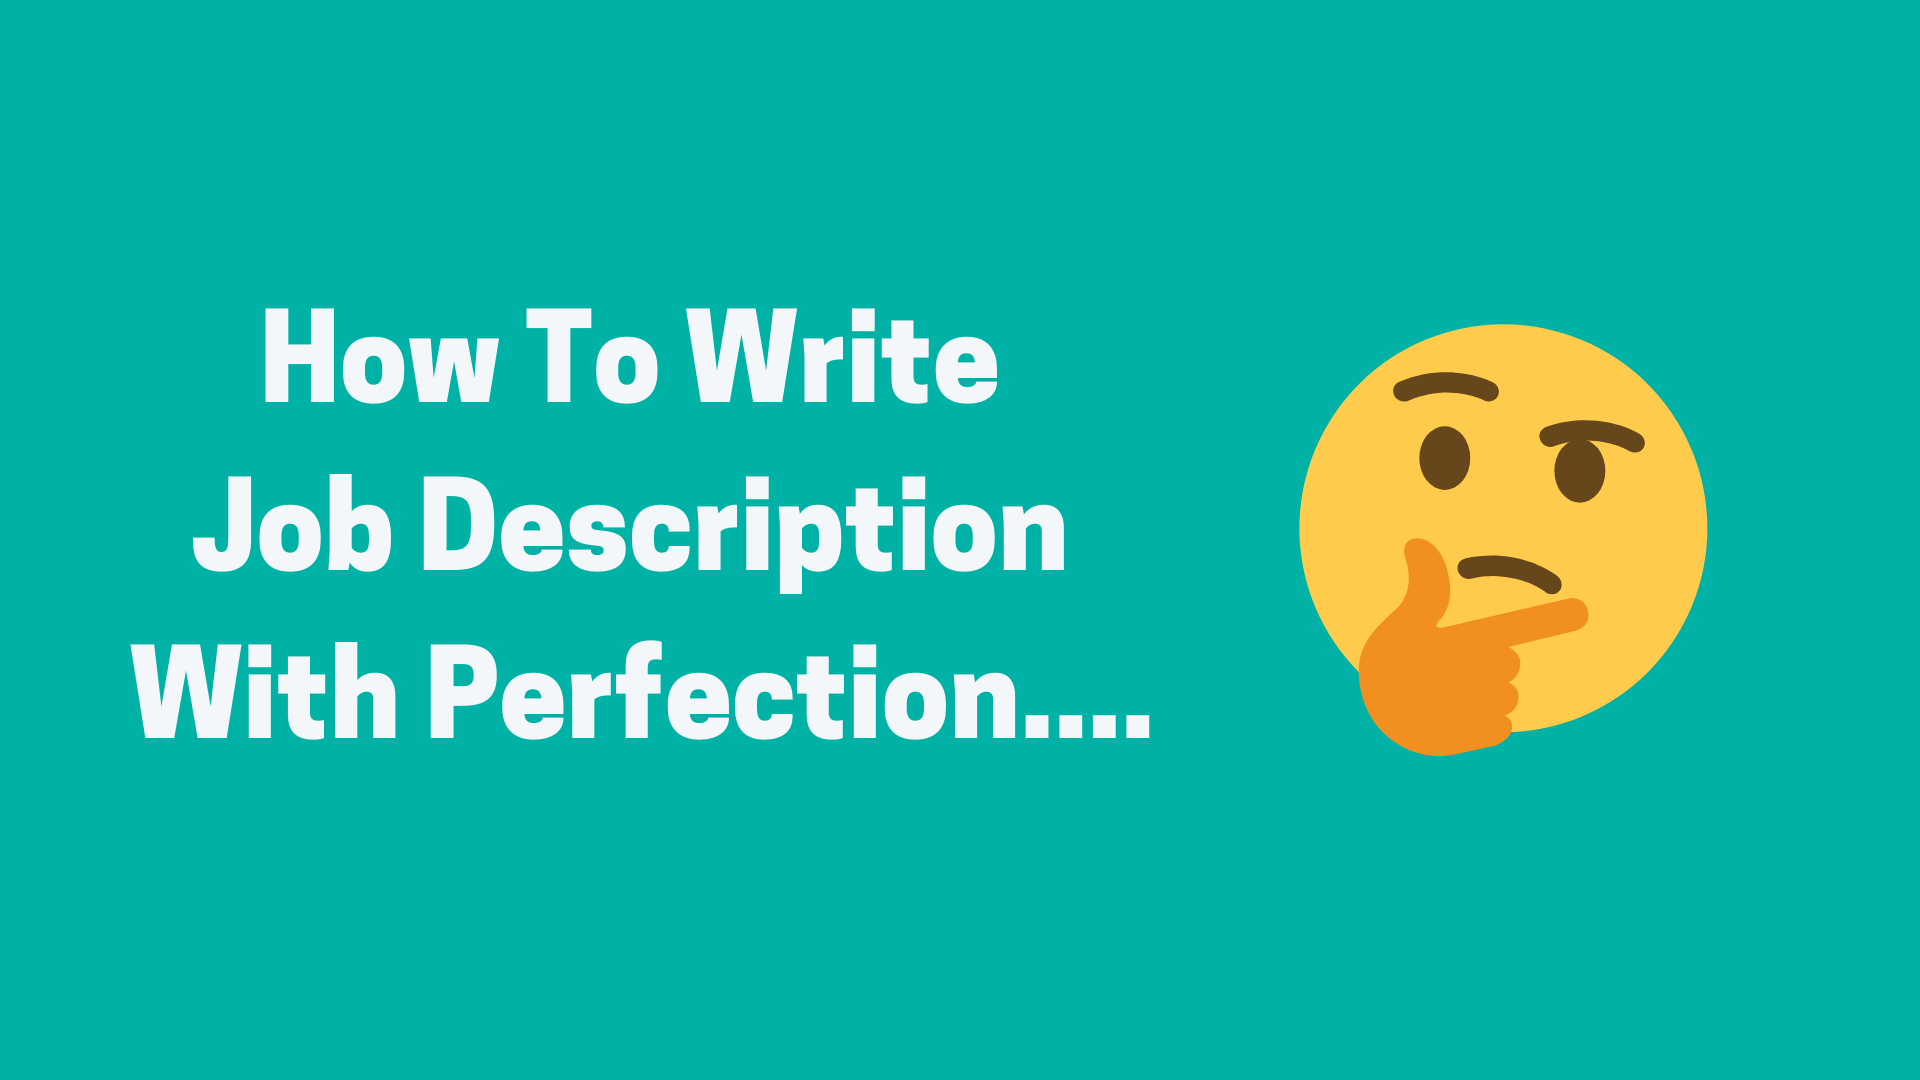 How to write job description with perfection